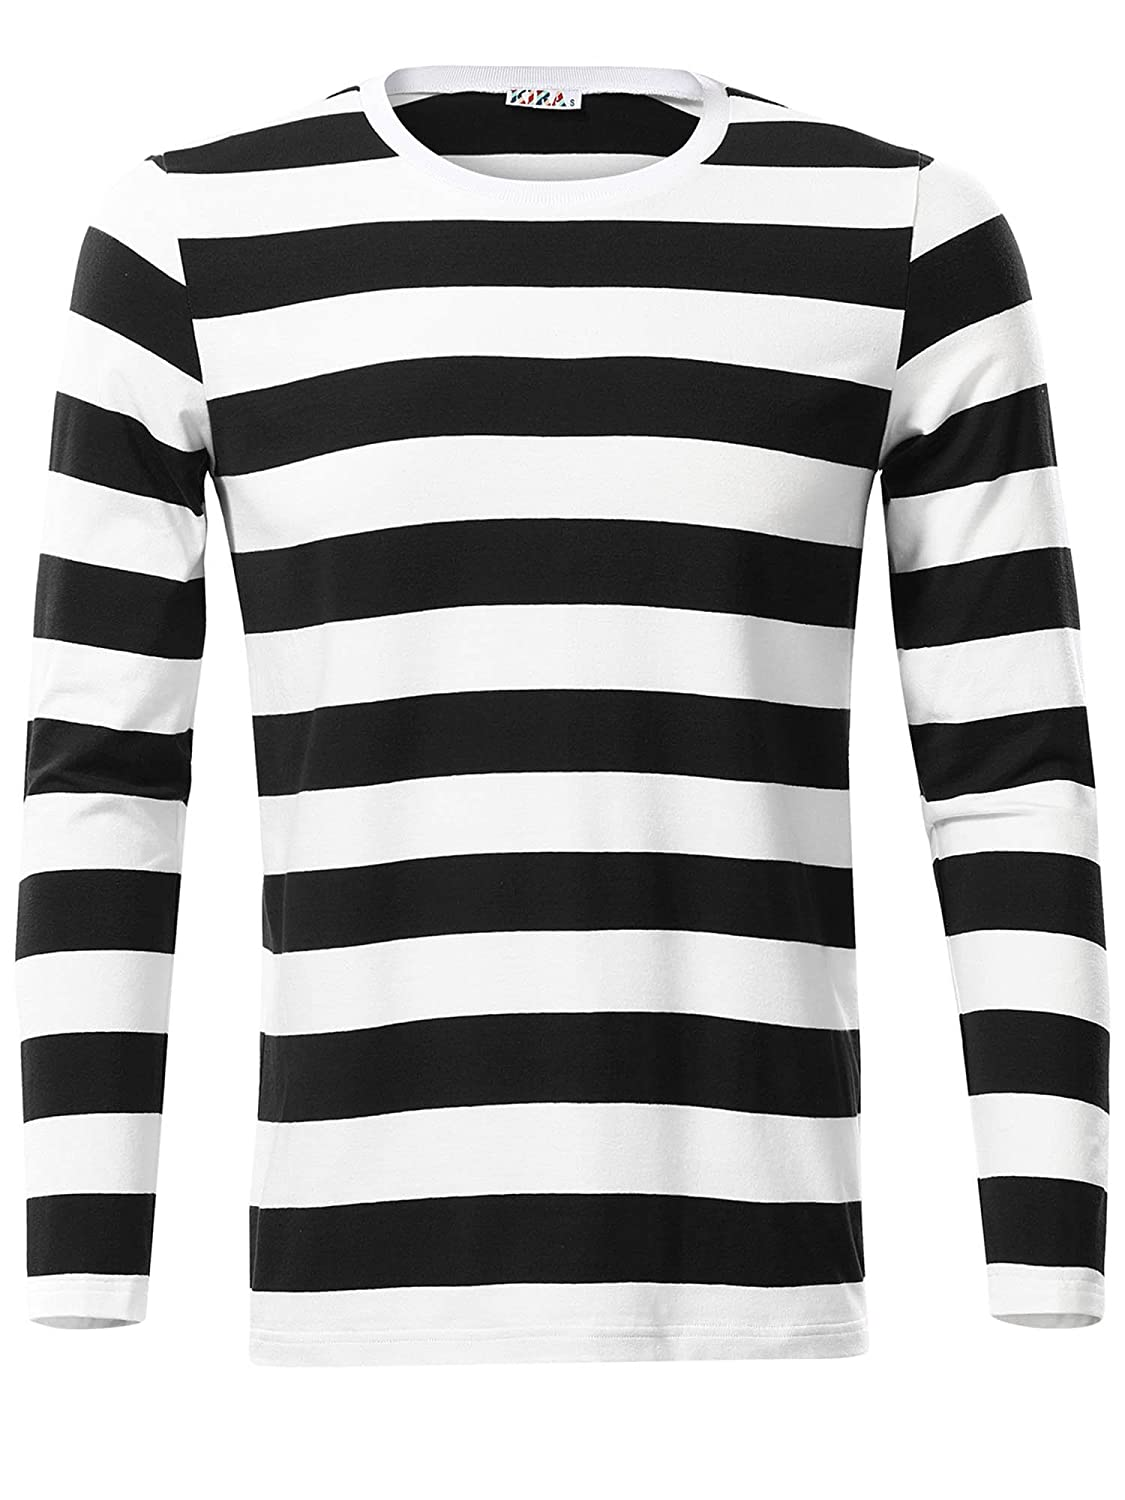 Black And White Striped T Shirt Walmart